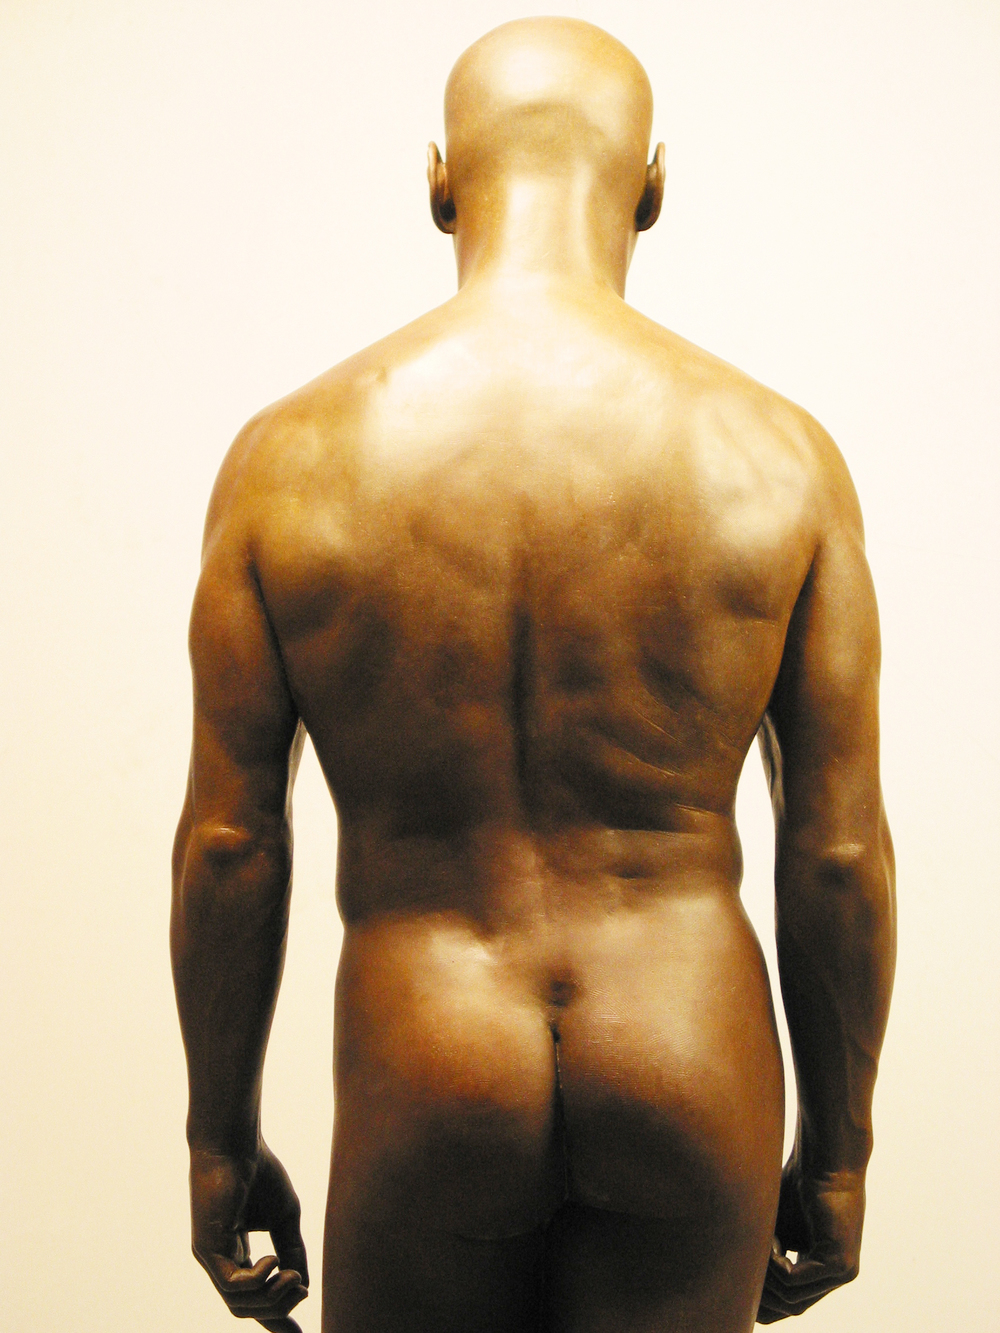 Brian Booth Craig_Sleepwalker (self-portrait) _back.jpg